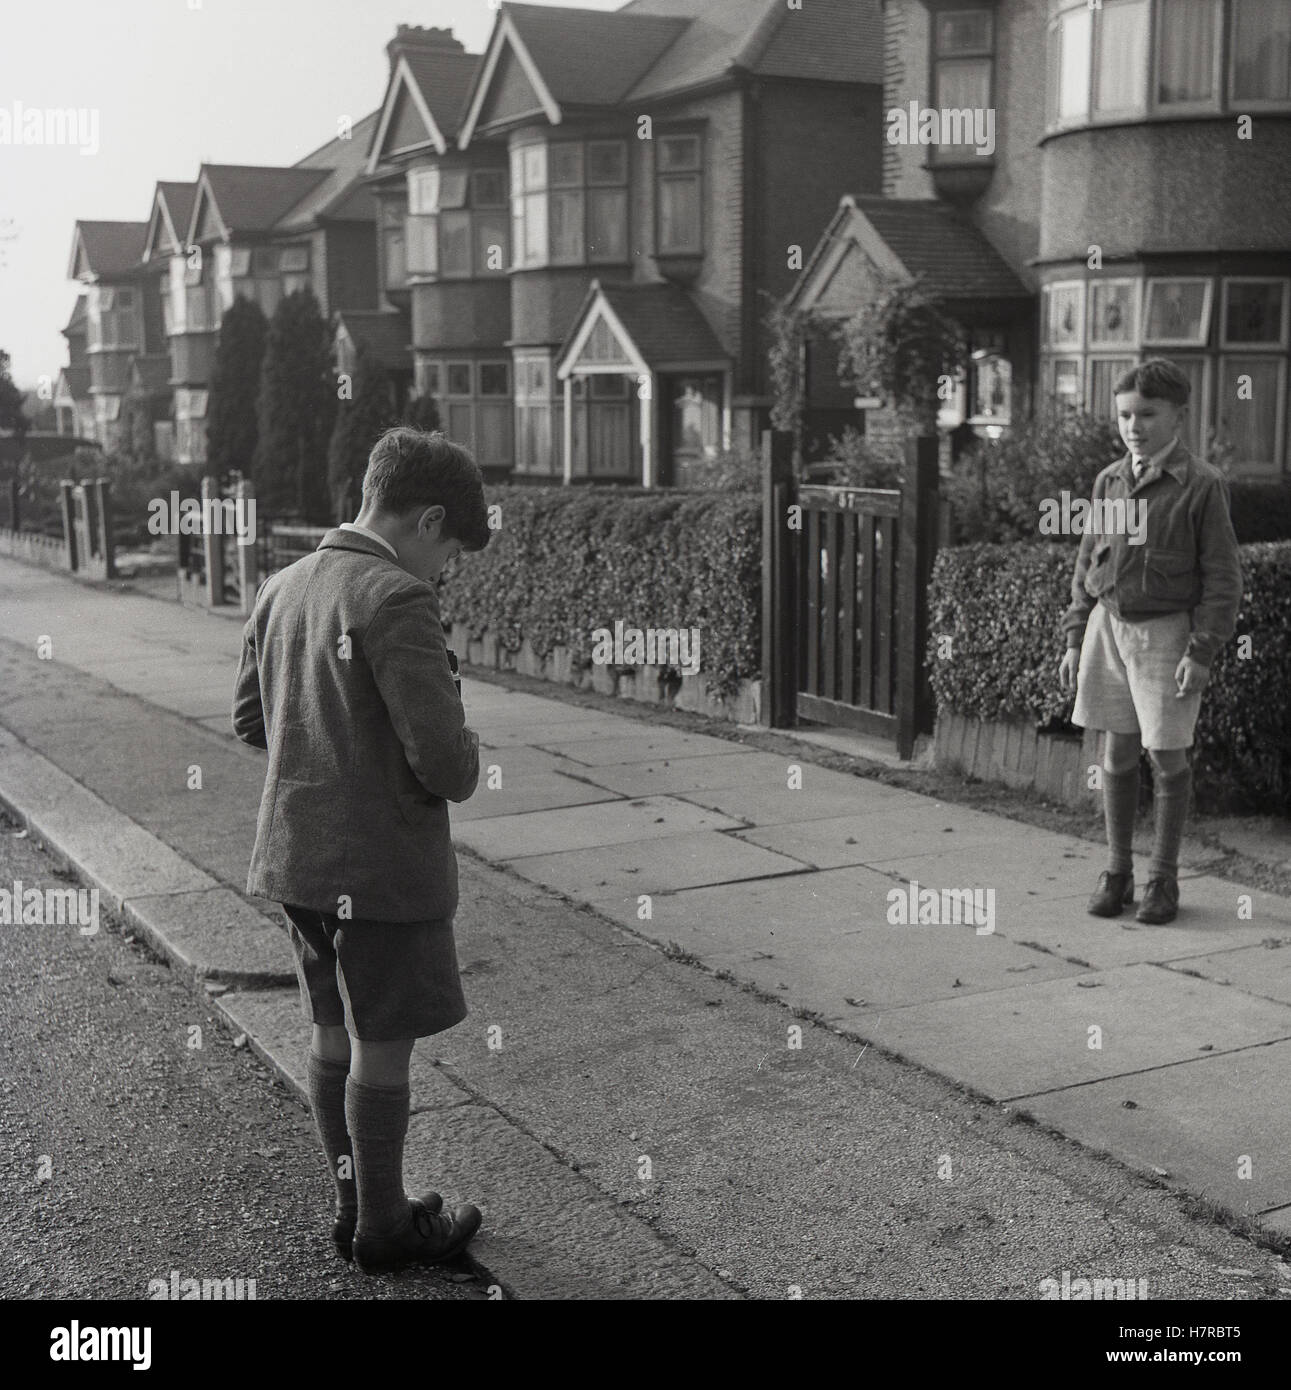 1950sm, historical, learning about photography. a young boy in school uniform taking a photograph of his friend - Stock Image